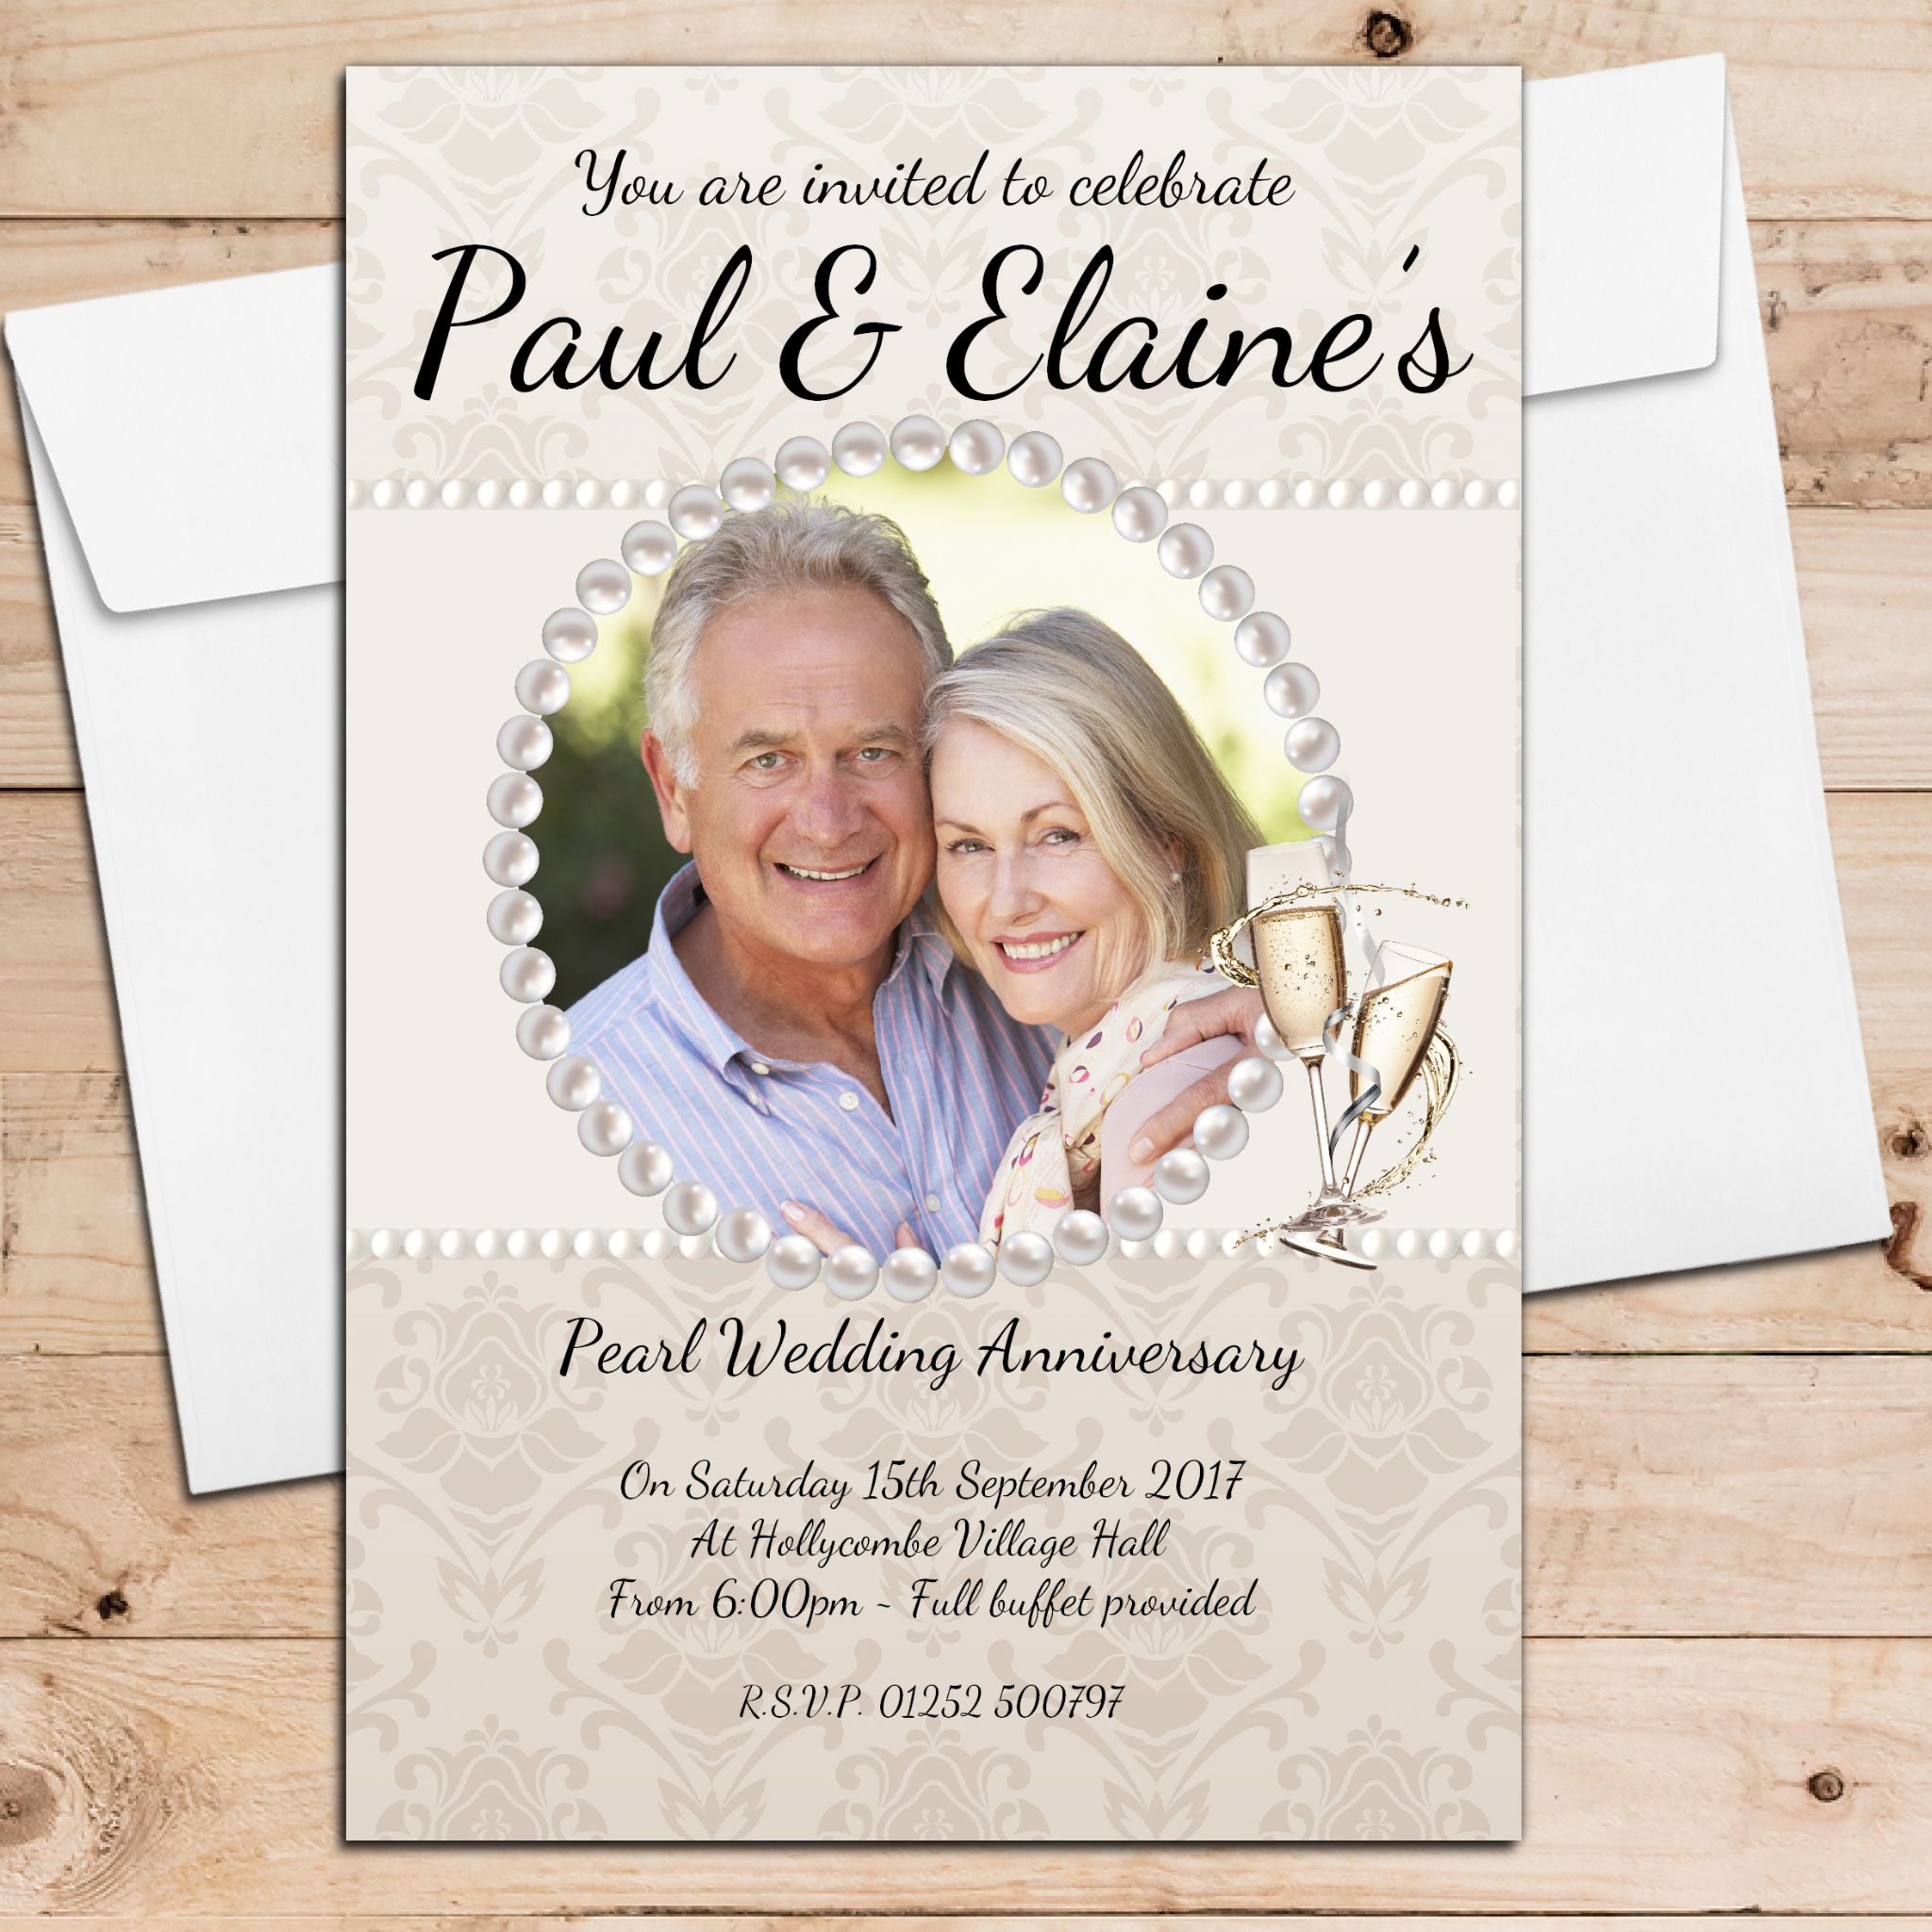 10 Year Wedding Anniversary Invitations: 10 Personalised 30th Pearl Wedding Anniversary Invitations N20